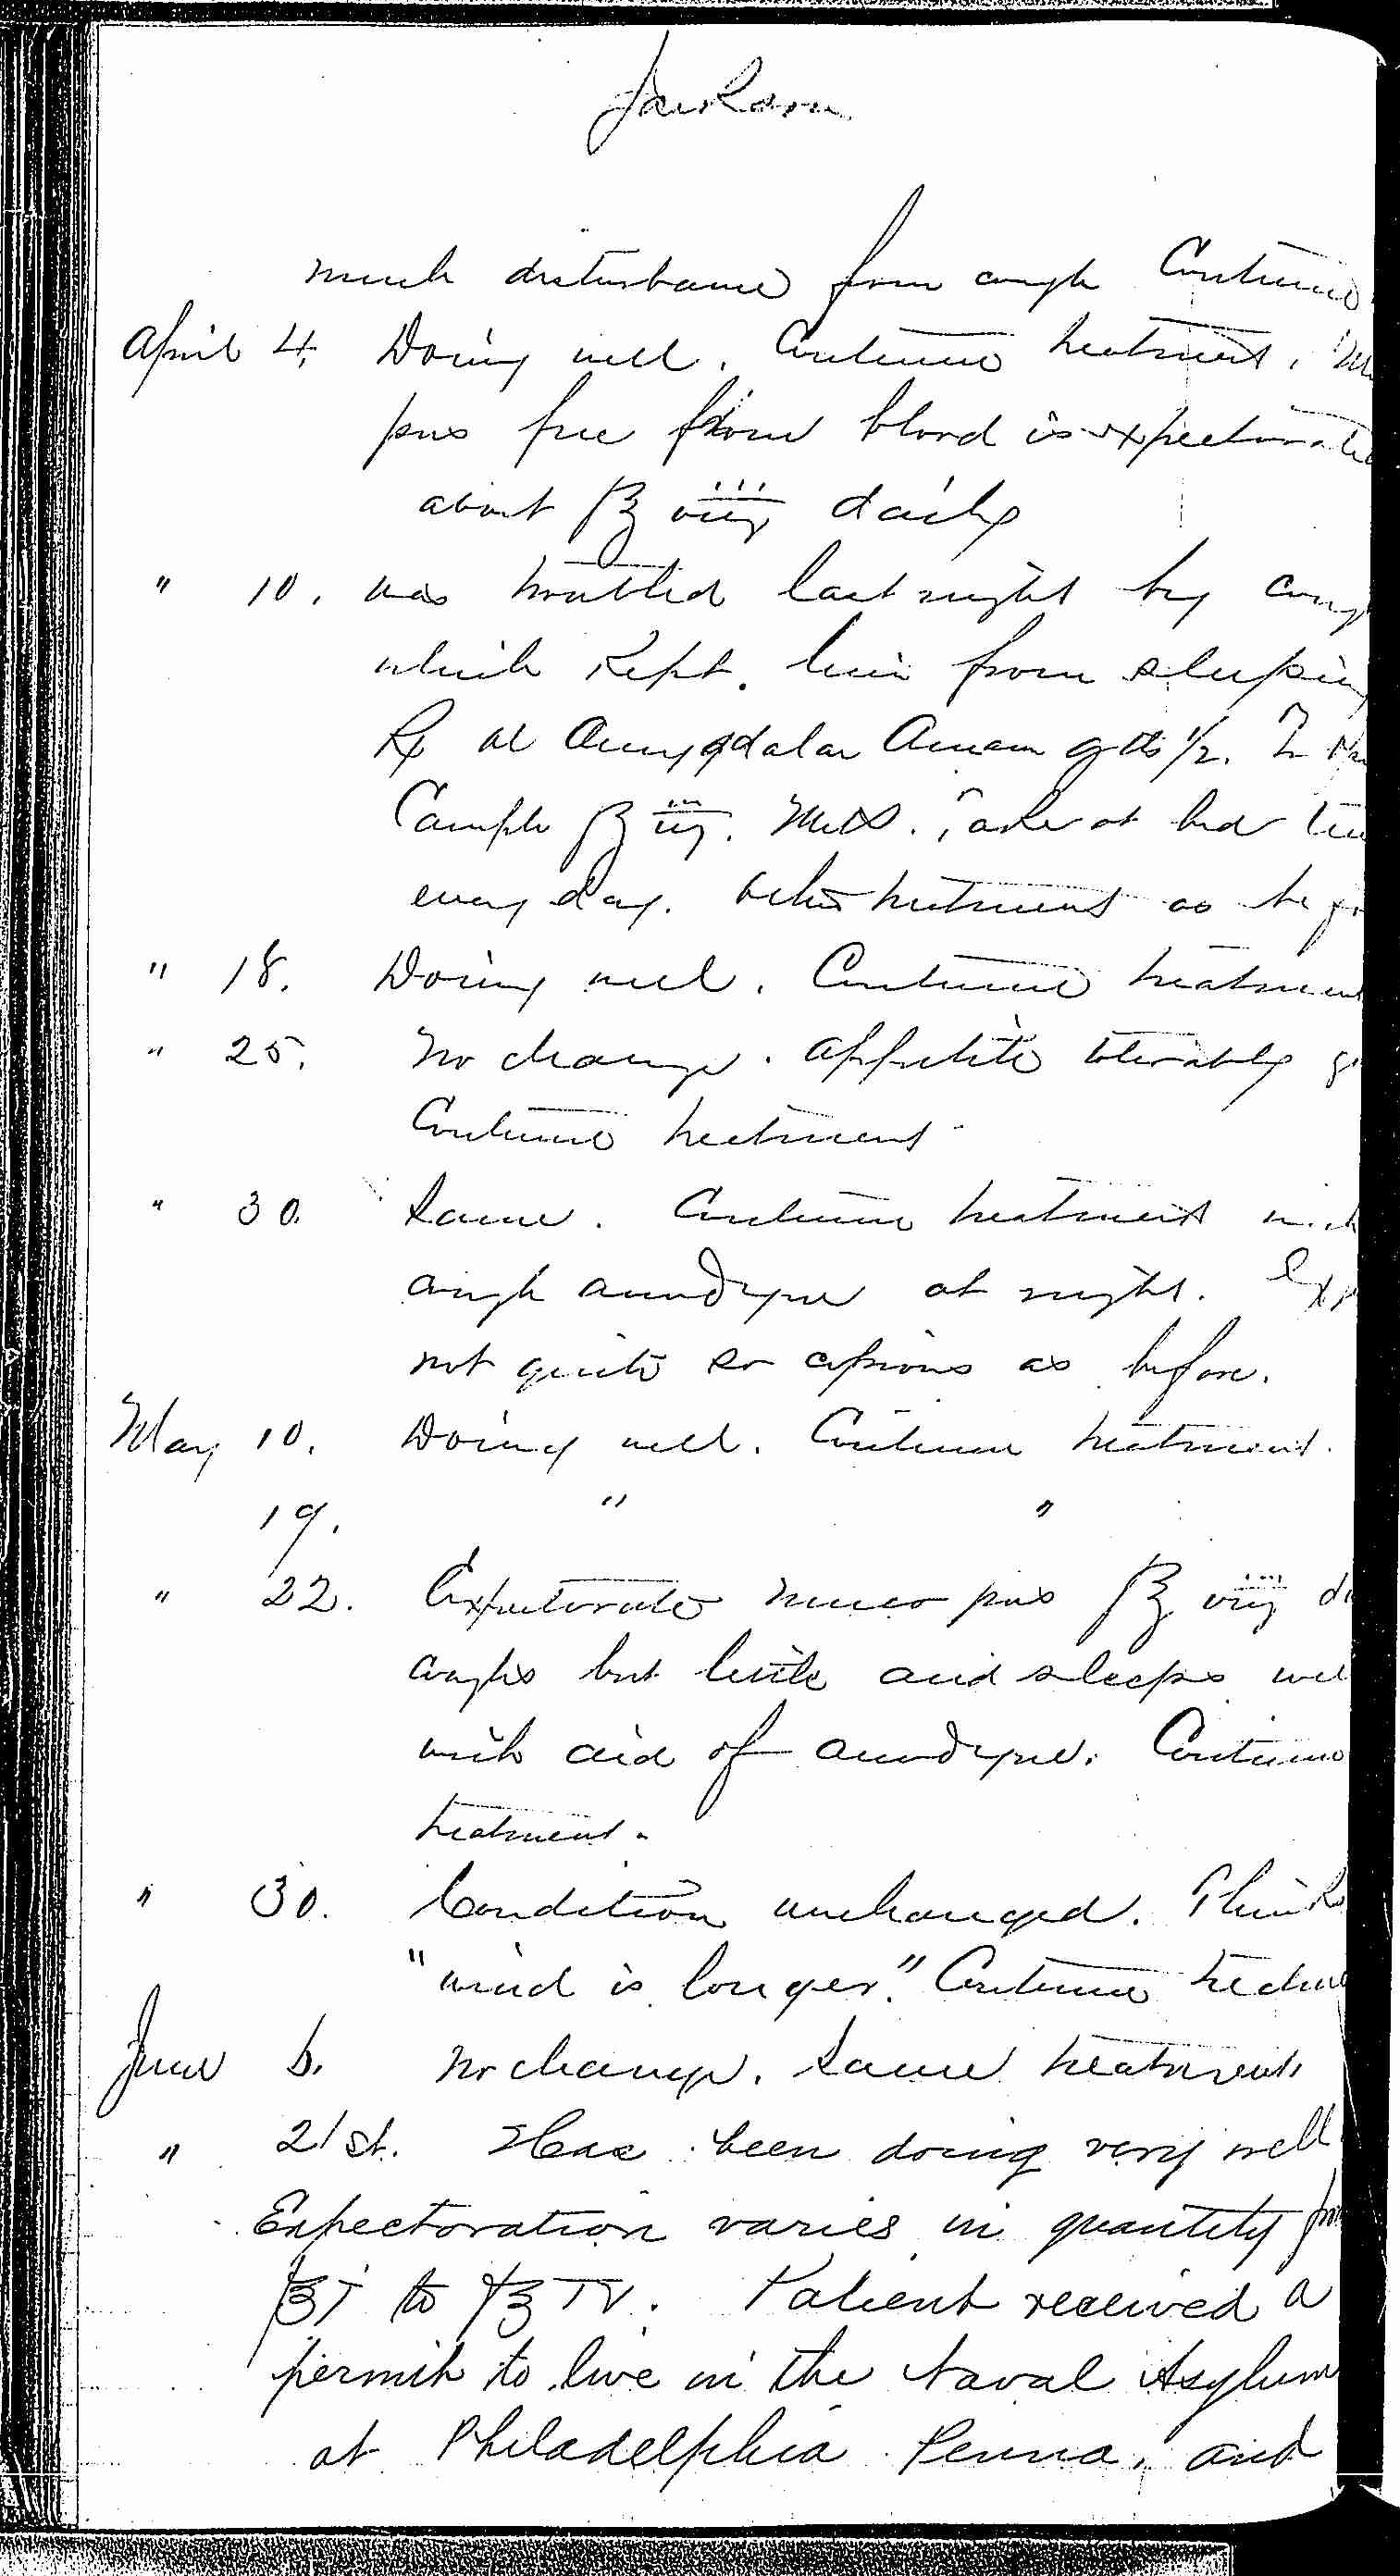 Entry for William Jackson (page 6 of 7) in the log Hospital Tickets and Case Papers - Naval Hospital - Washington, D.C. - 1868-69